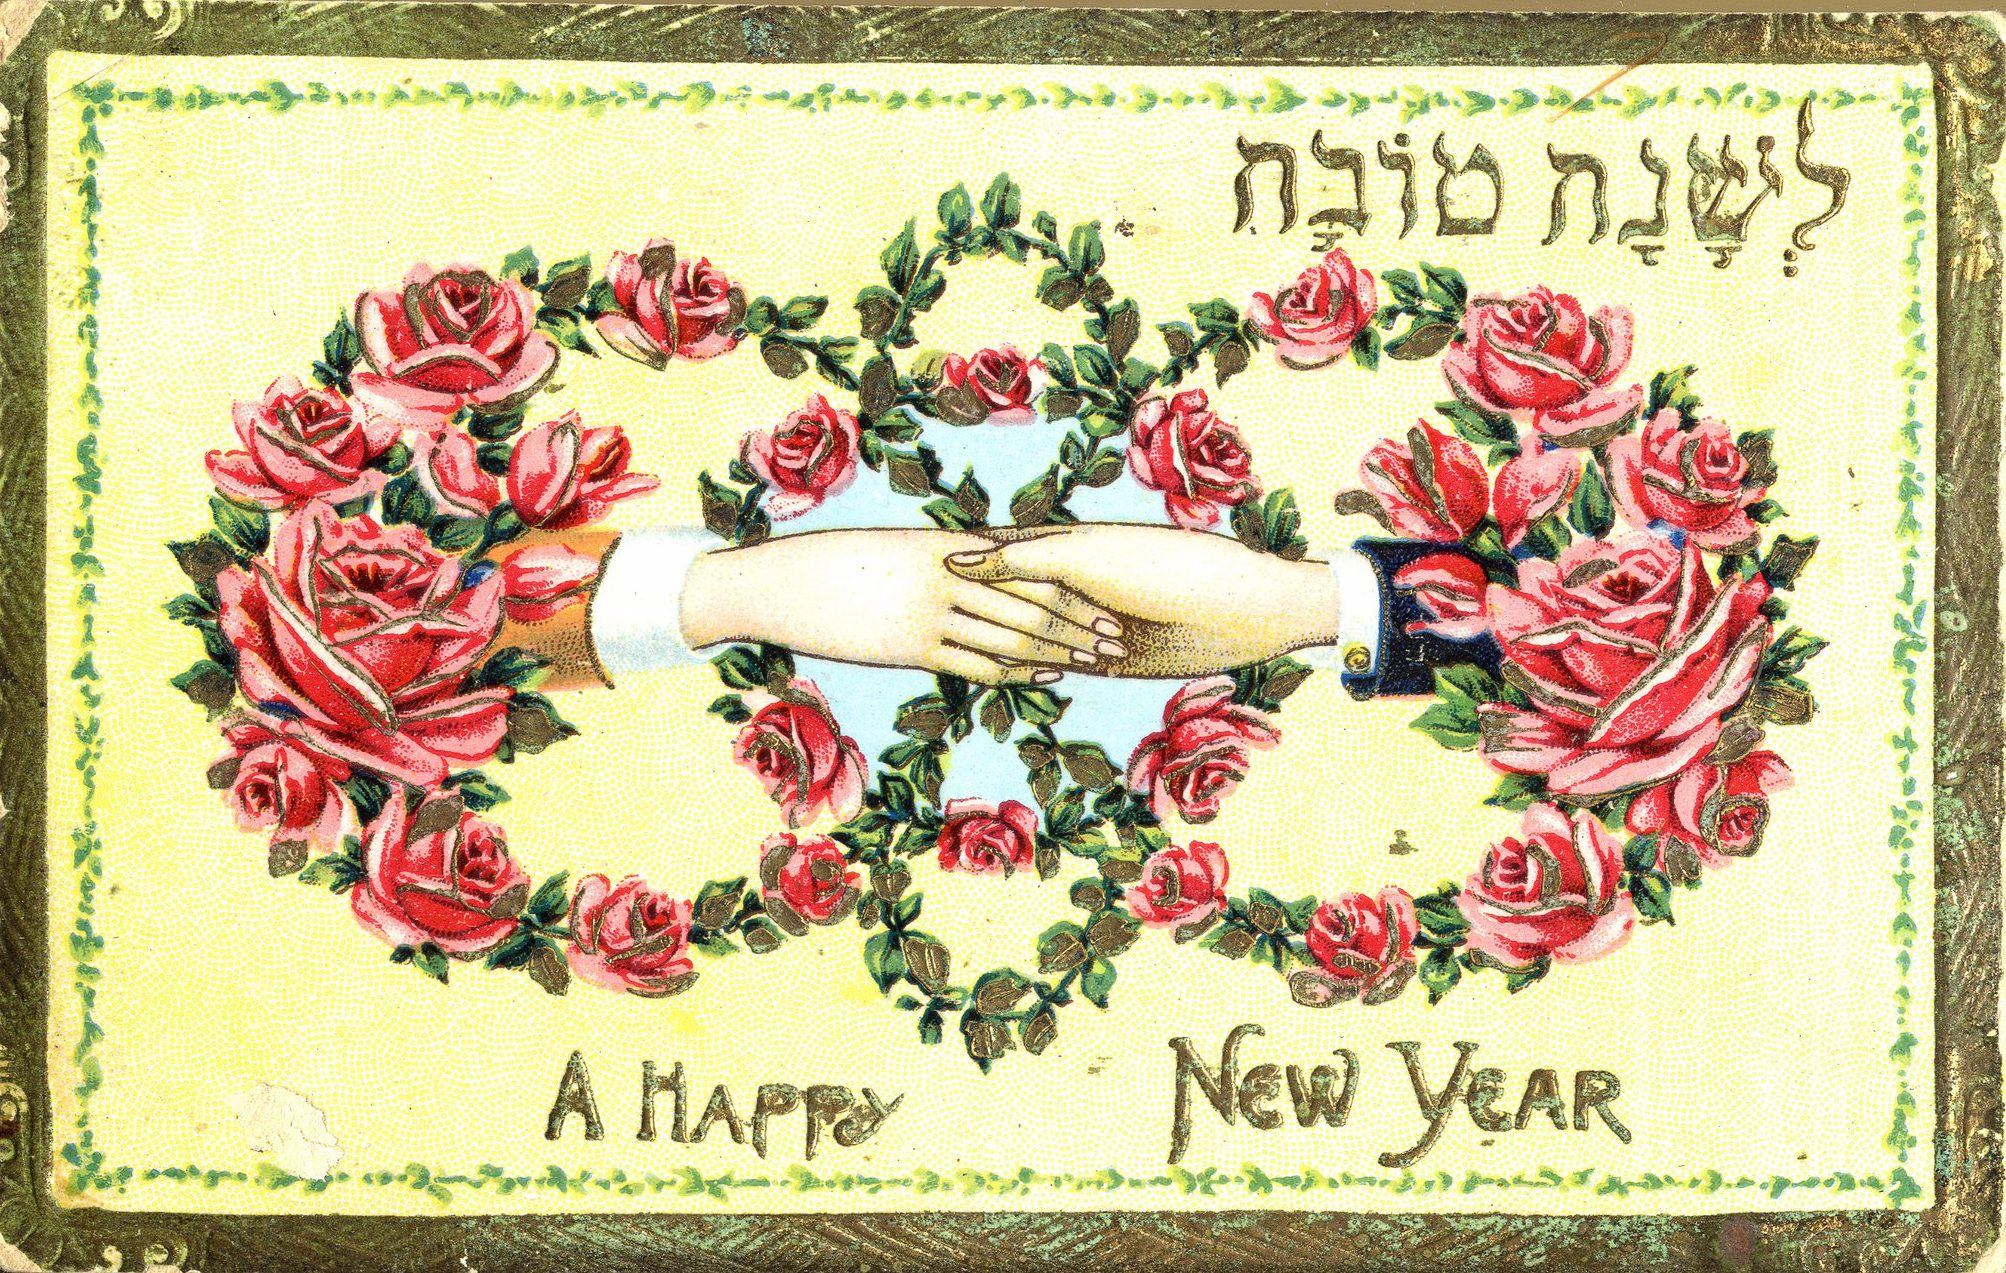 "Happy New Year postcard showing interlocking rings of roses containing two joined hands. At the top, the card says ""L'shanah tovah"" in Hebrew; at the bottom, it reads ""A Happy New Year"""